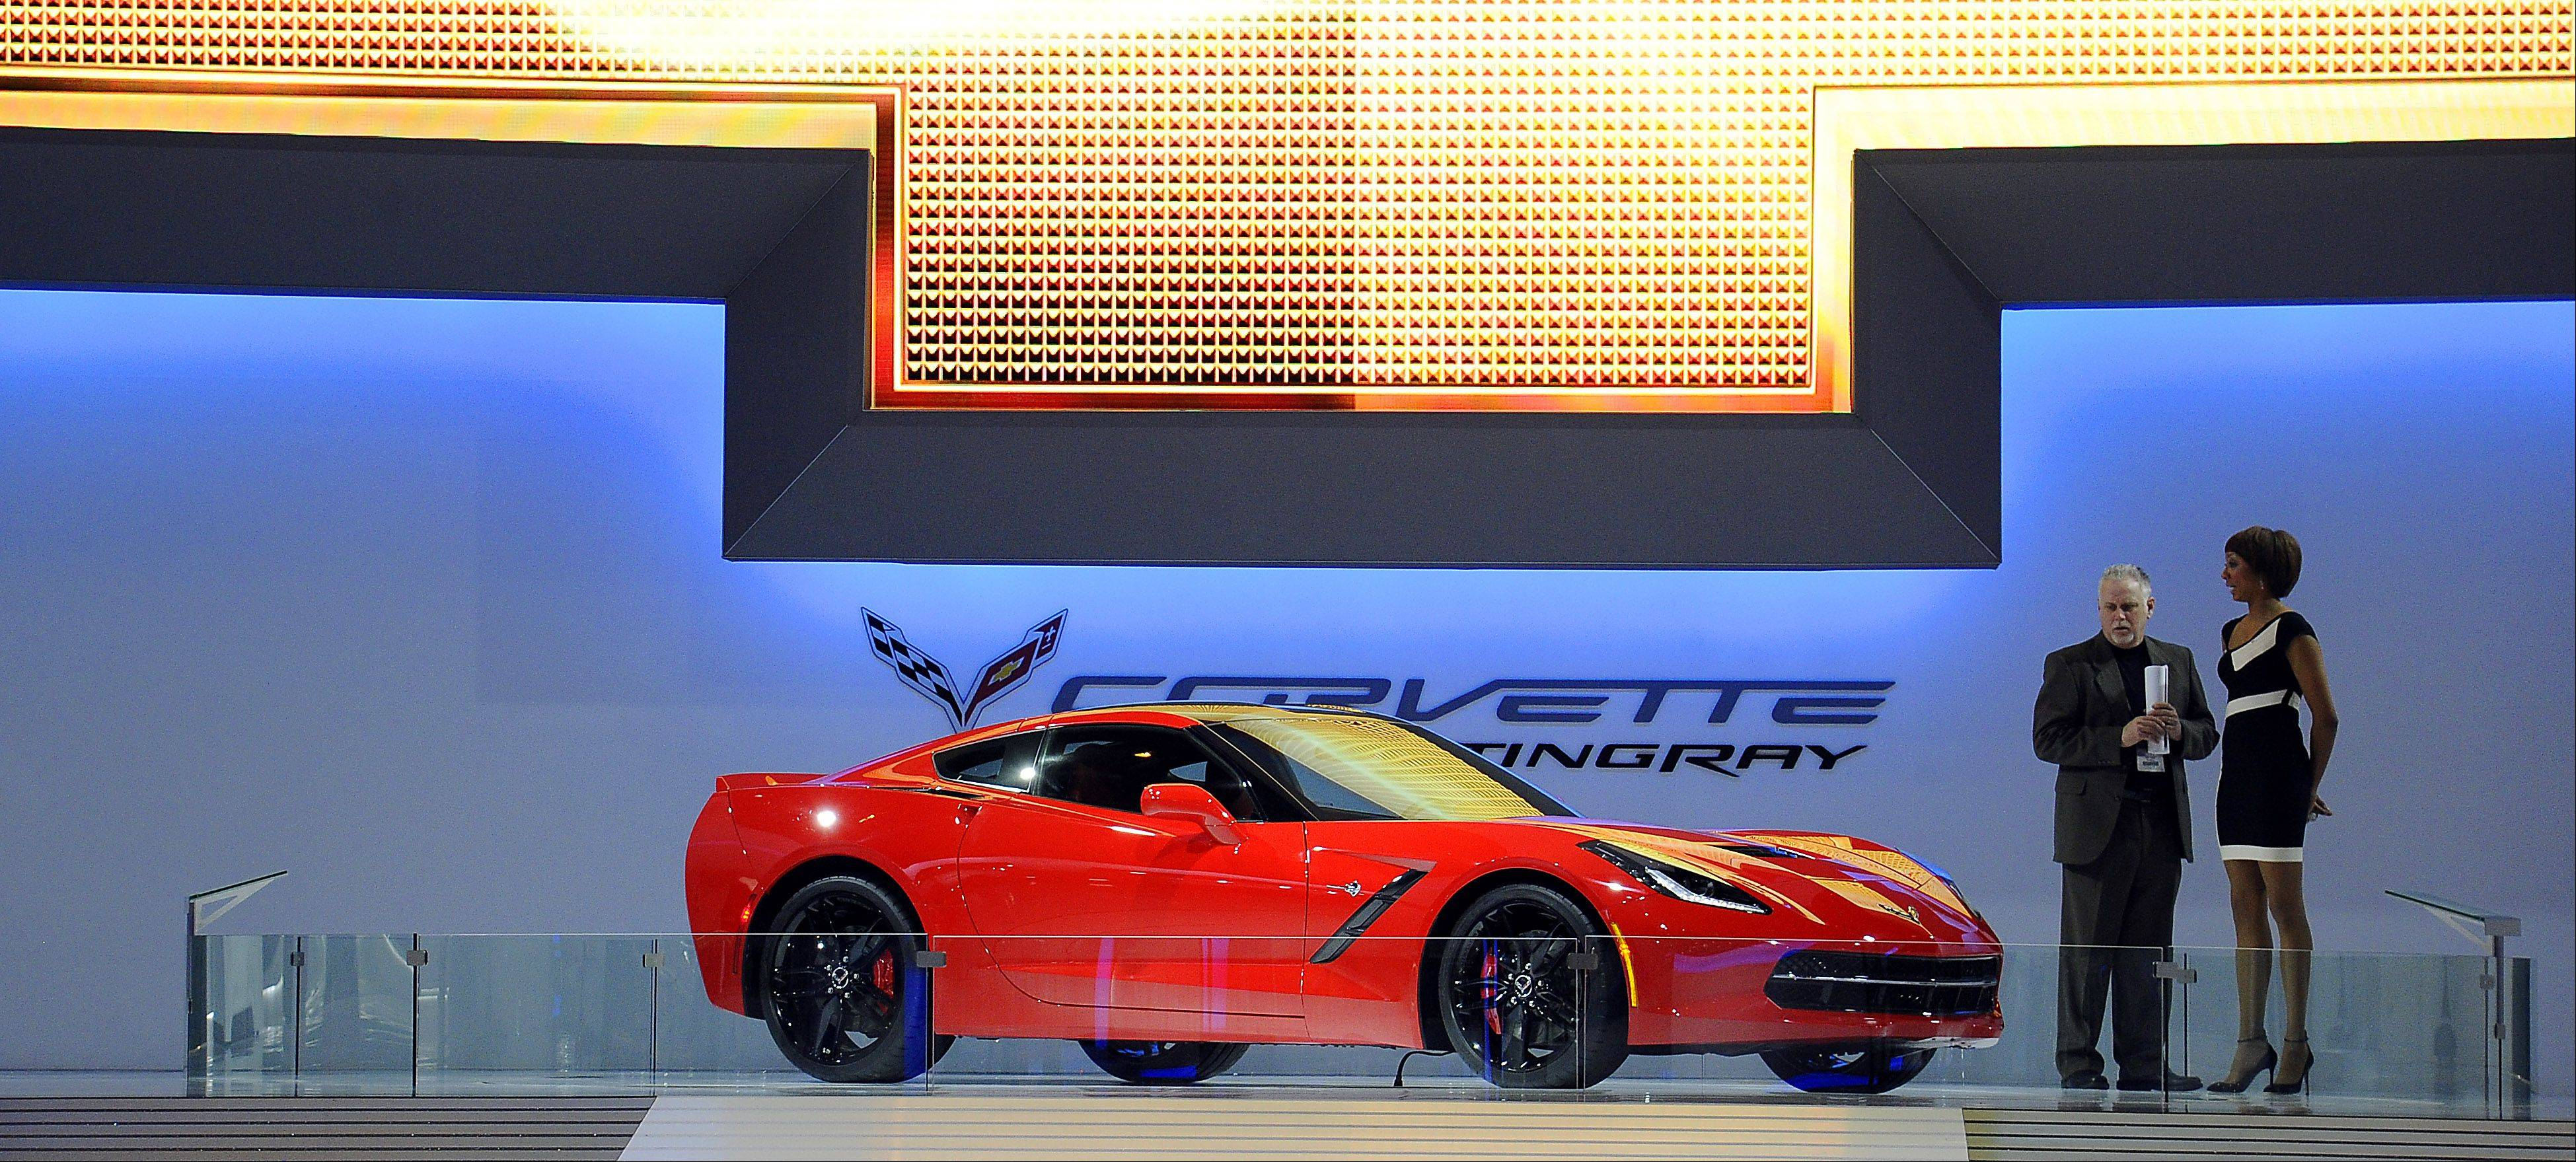 The 2014 Corvette Stingray.